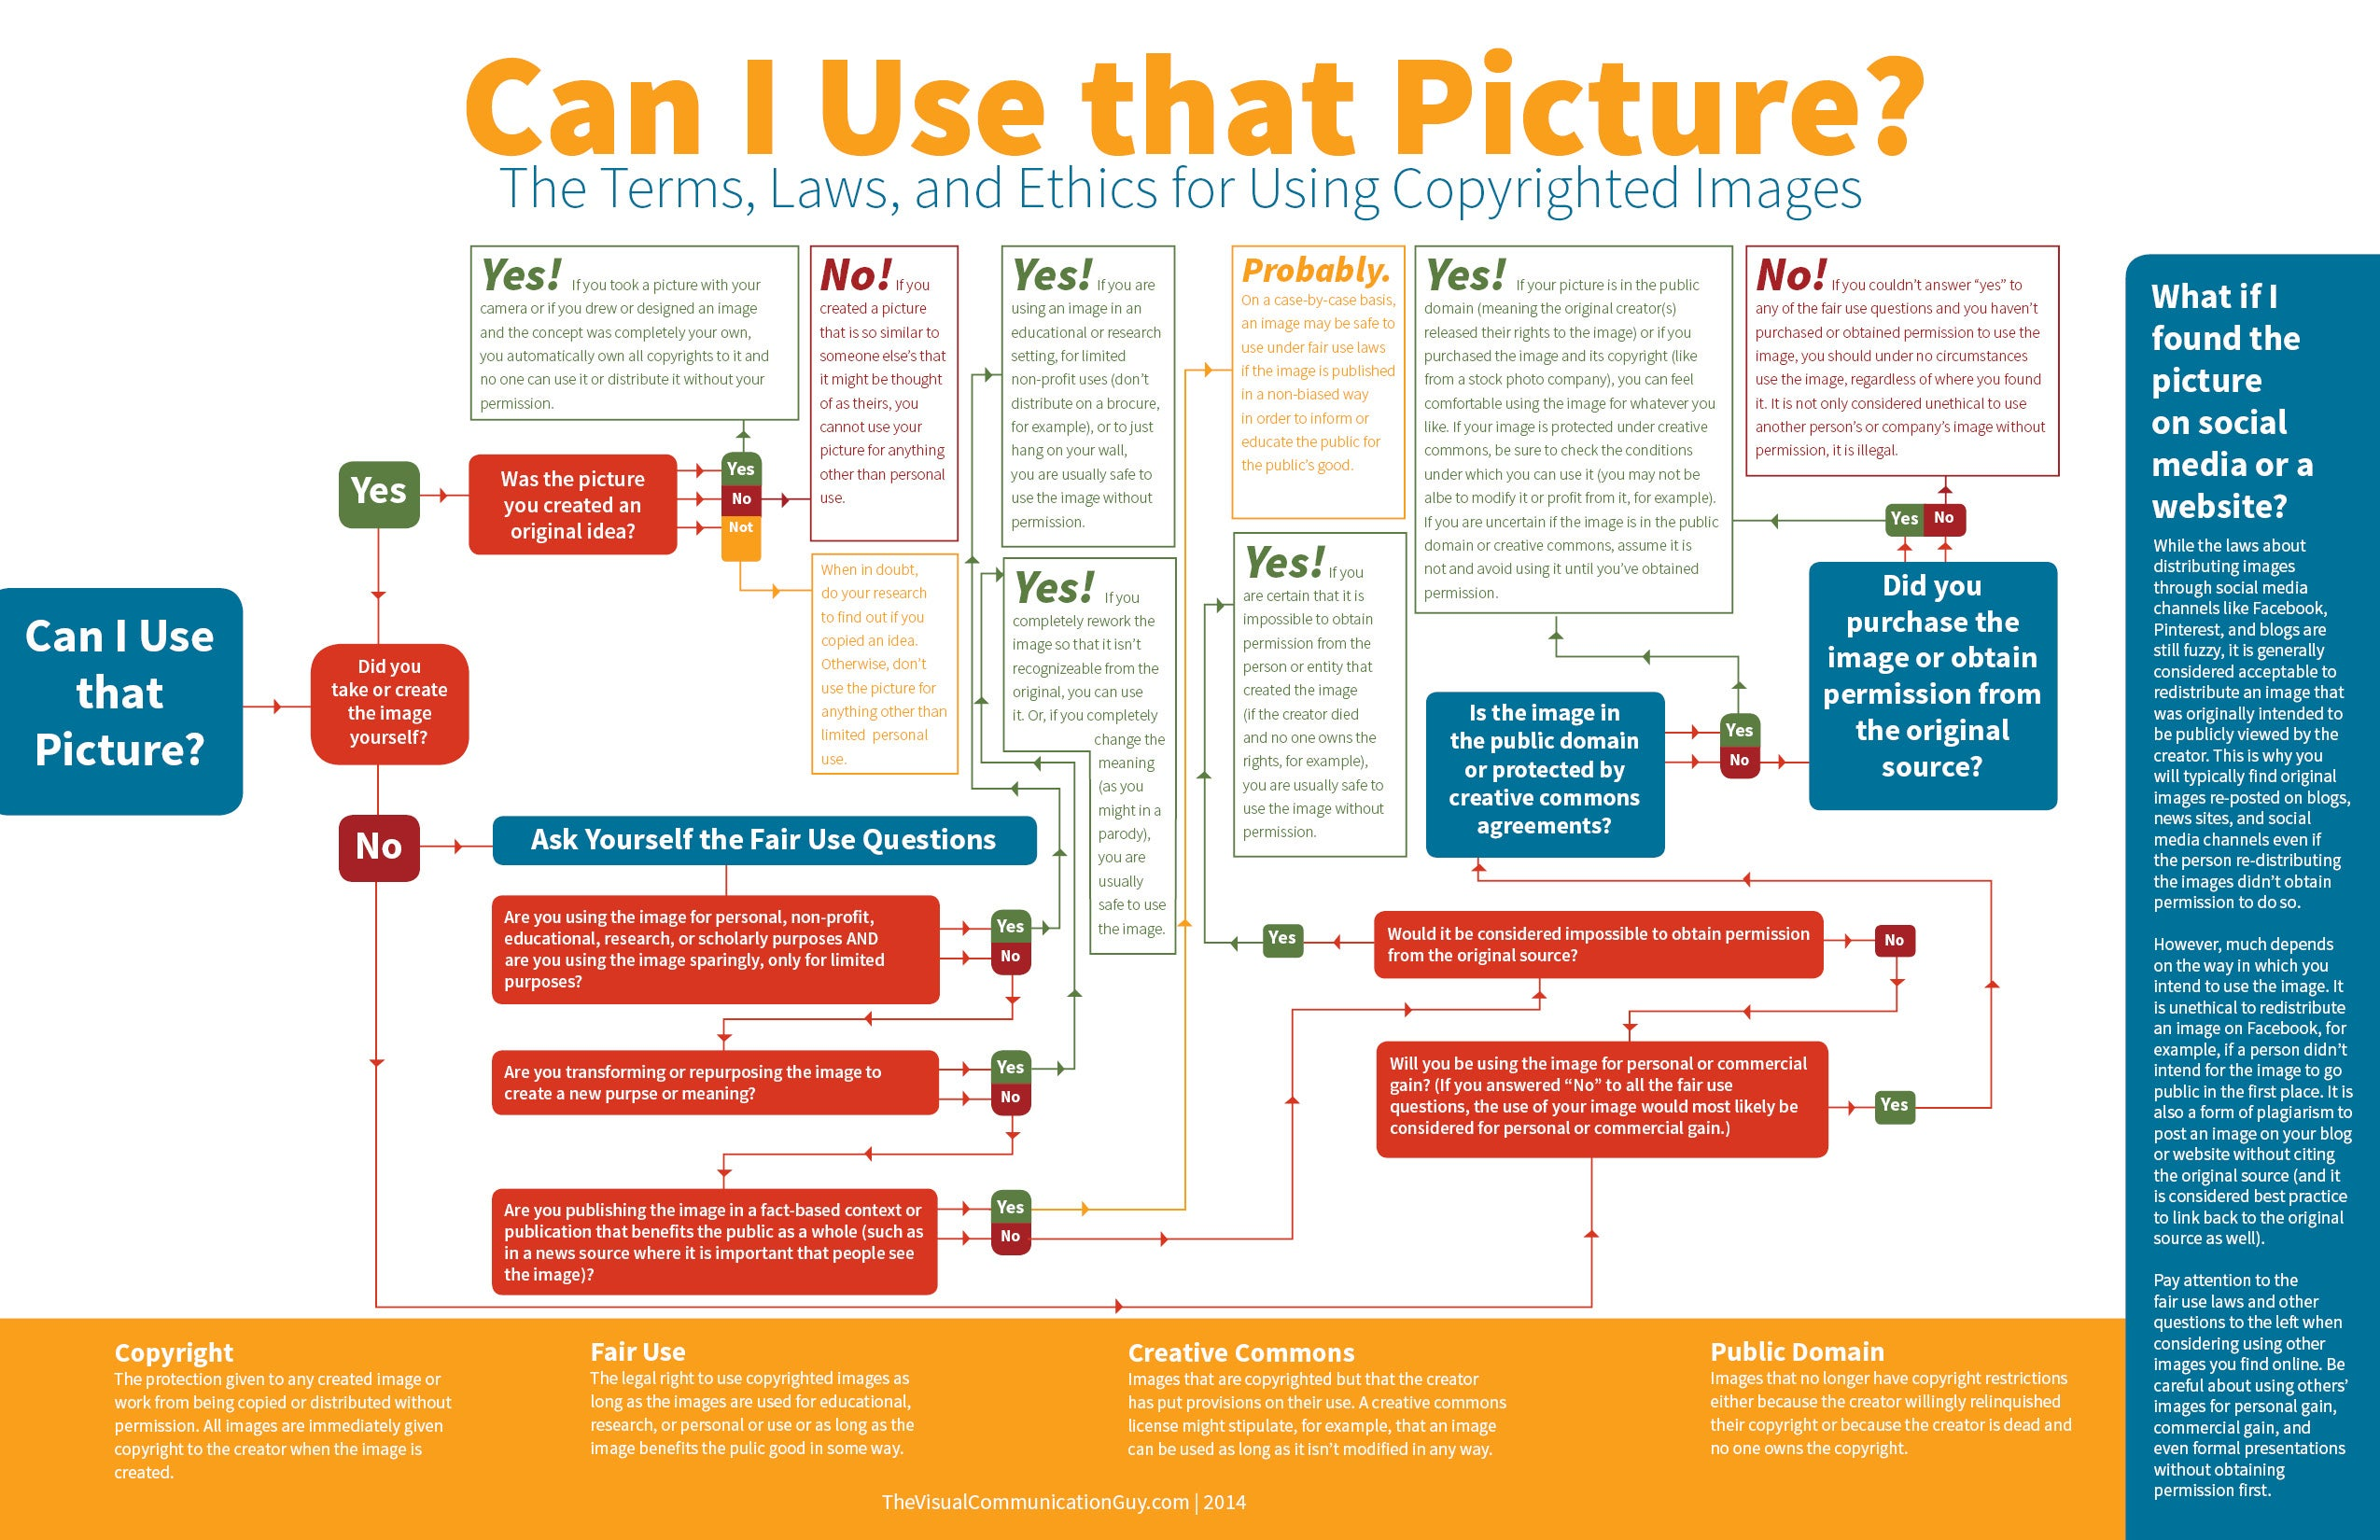 Follow This Chart to Know If You Can Use an Image from the Internet